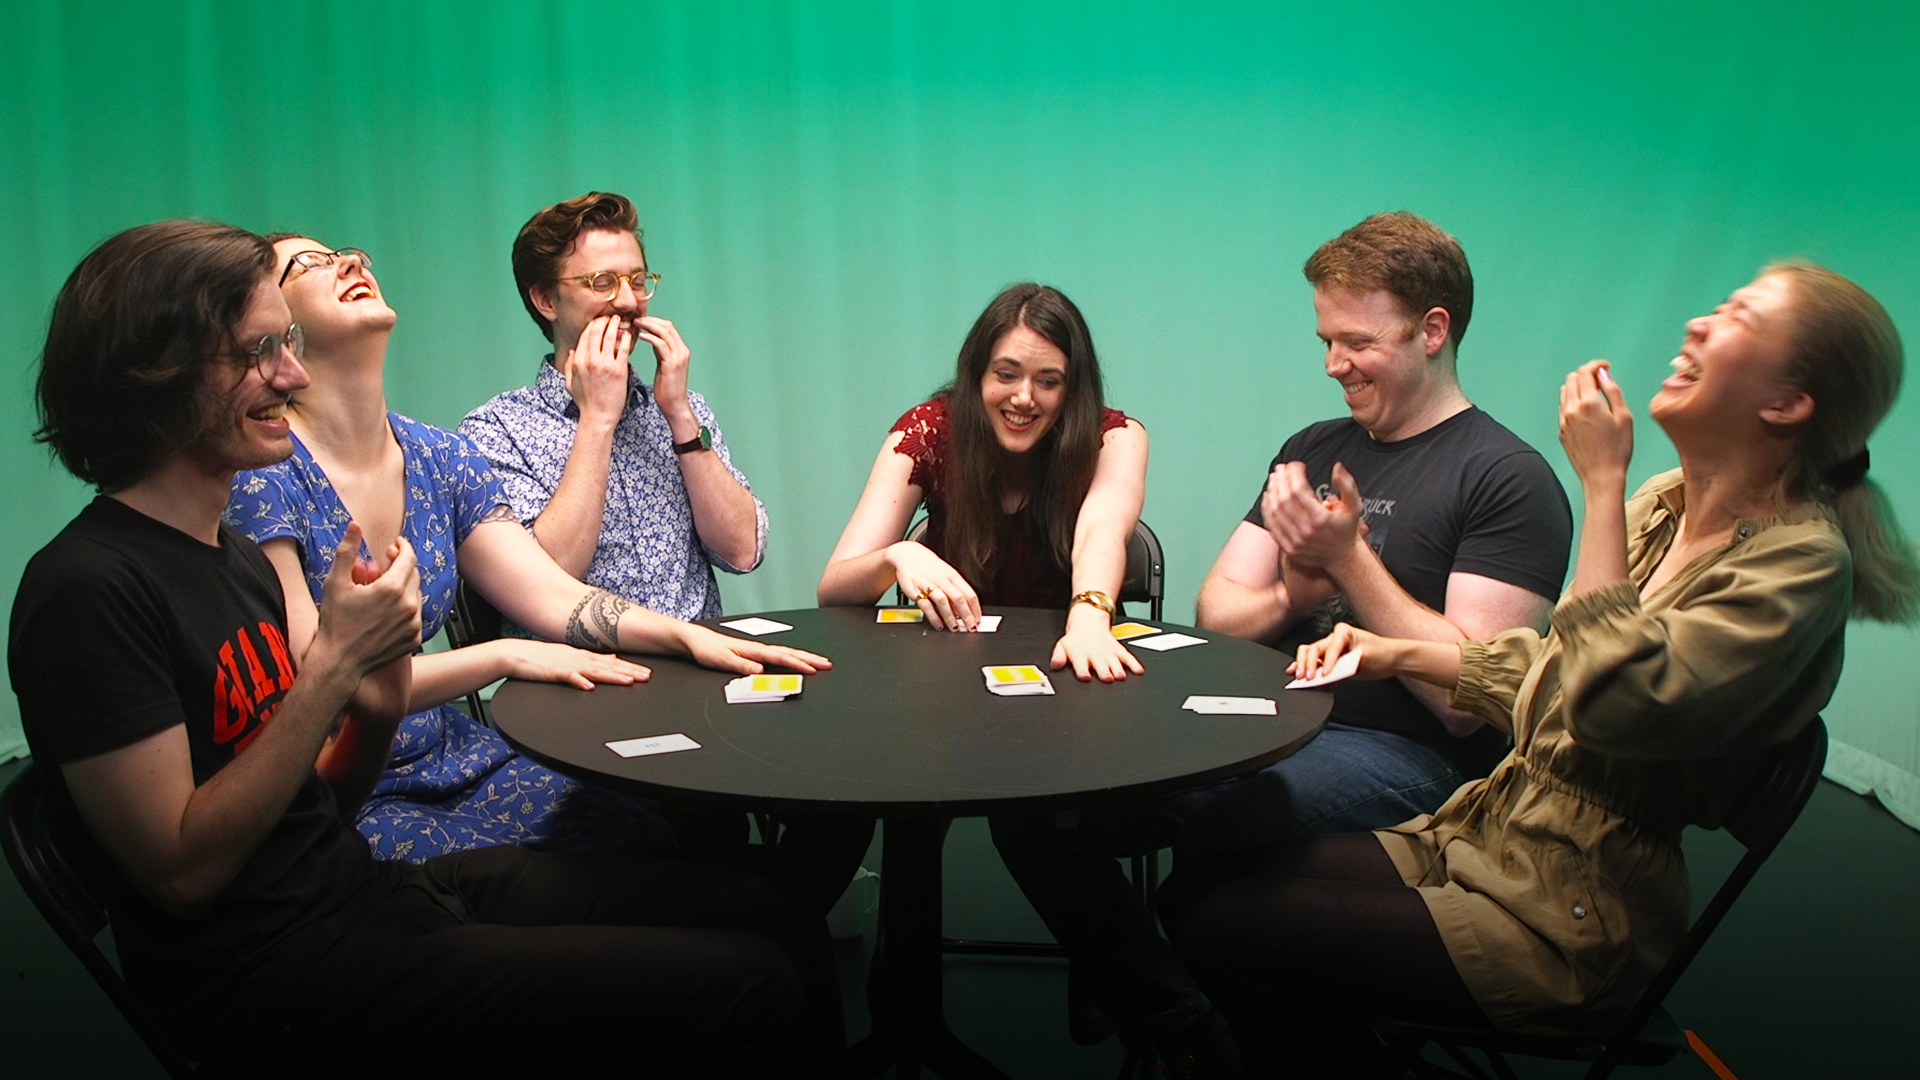 A group of six friends laugh as they sit around a table playing a card game together.